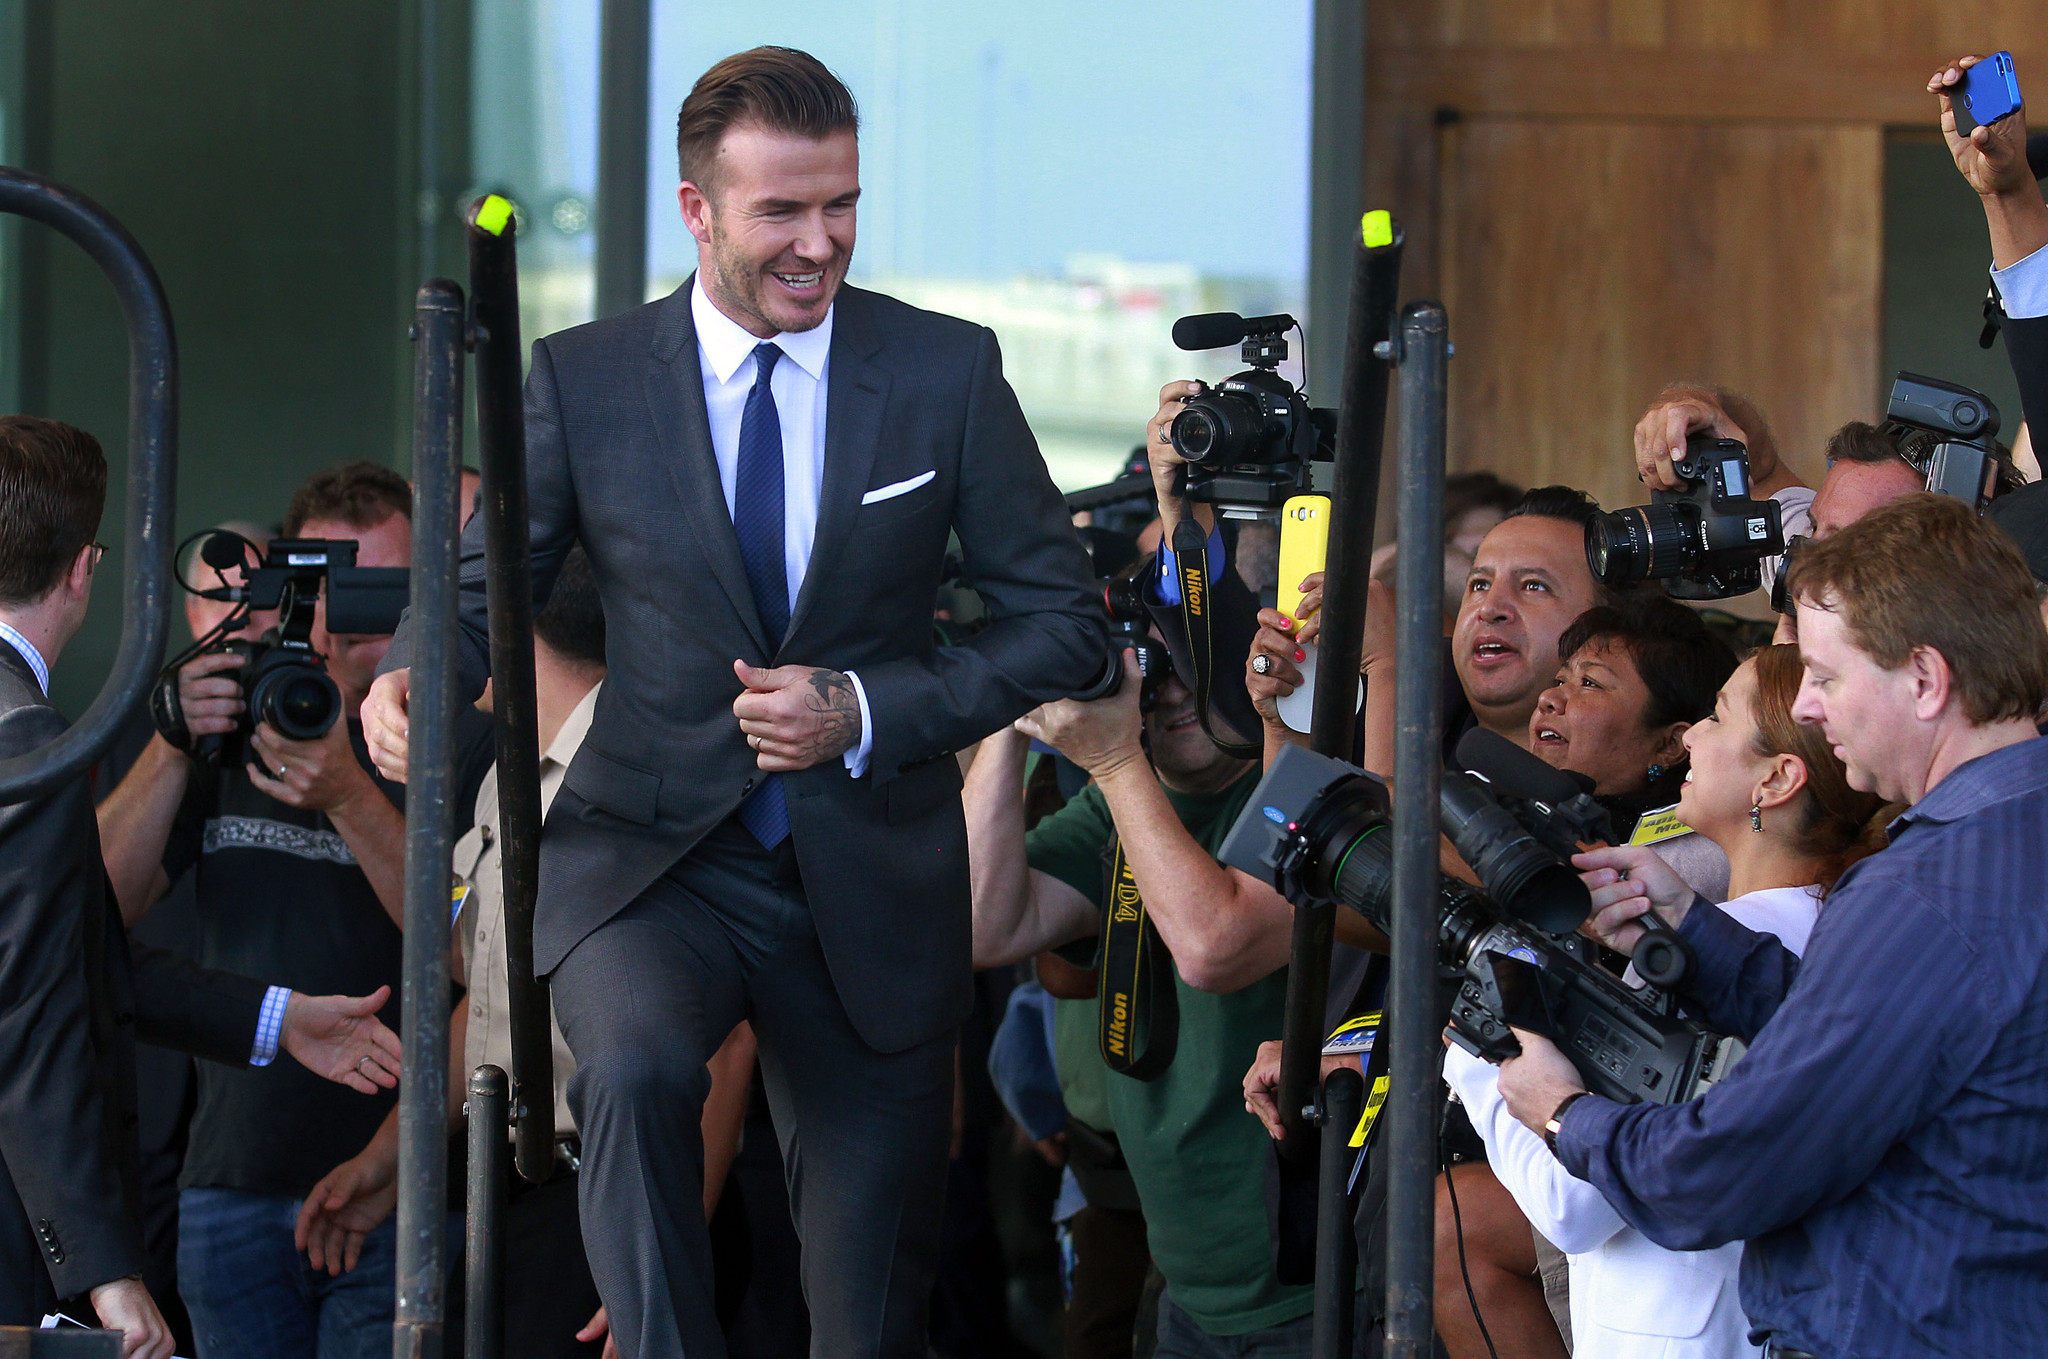 Celeb-spotting around South Florida - David Beckham makes announcement